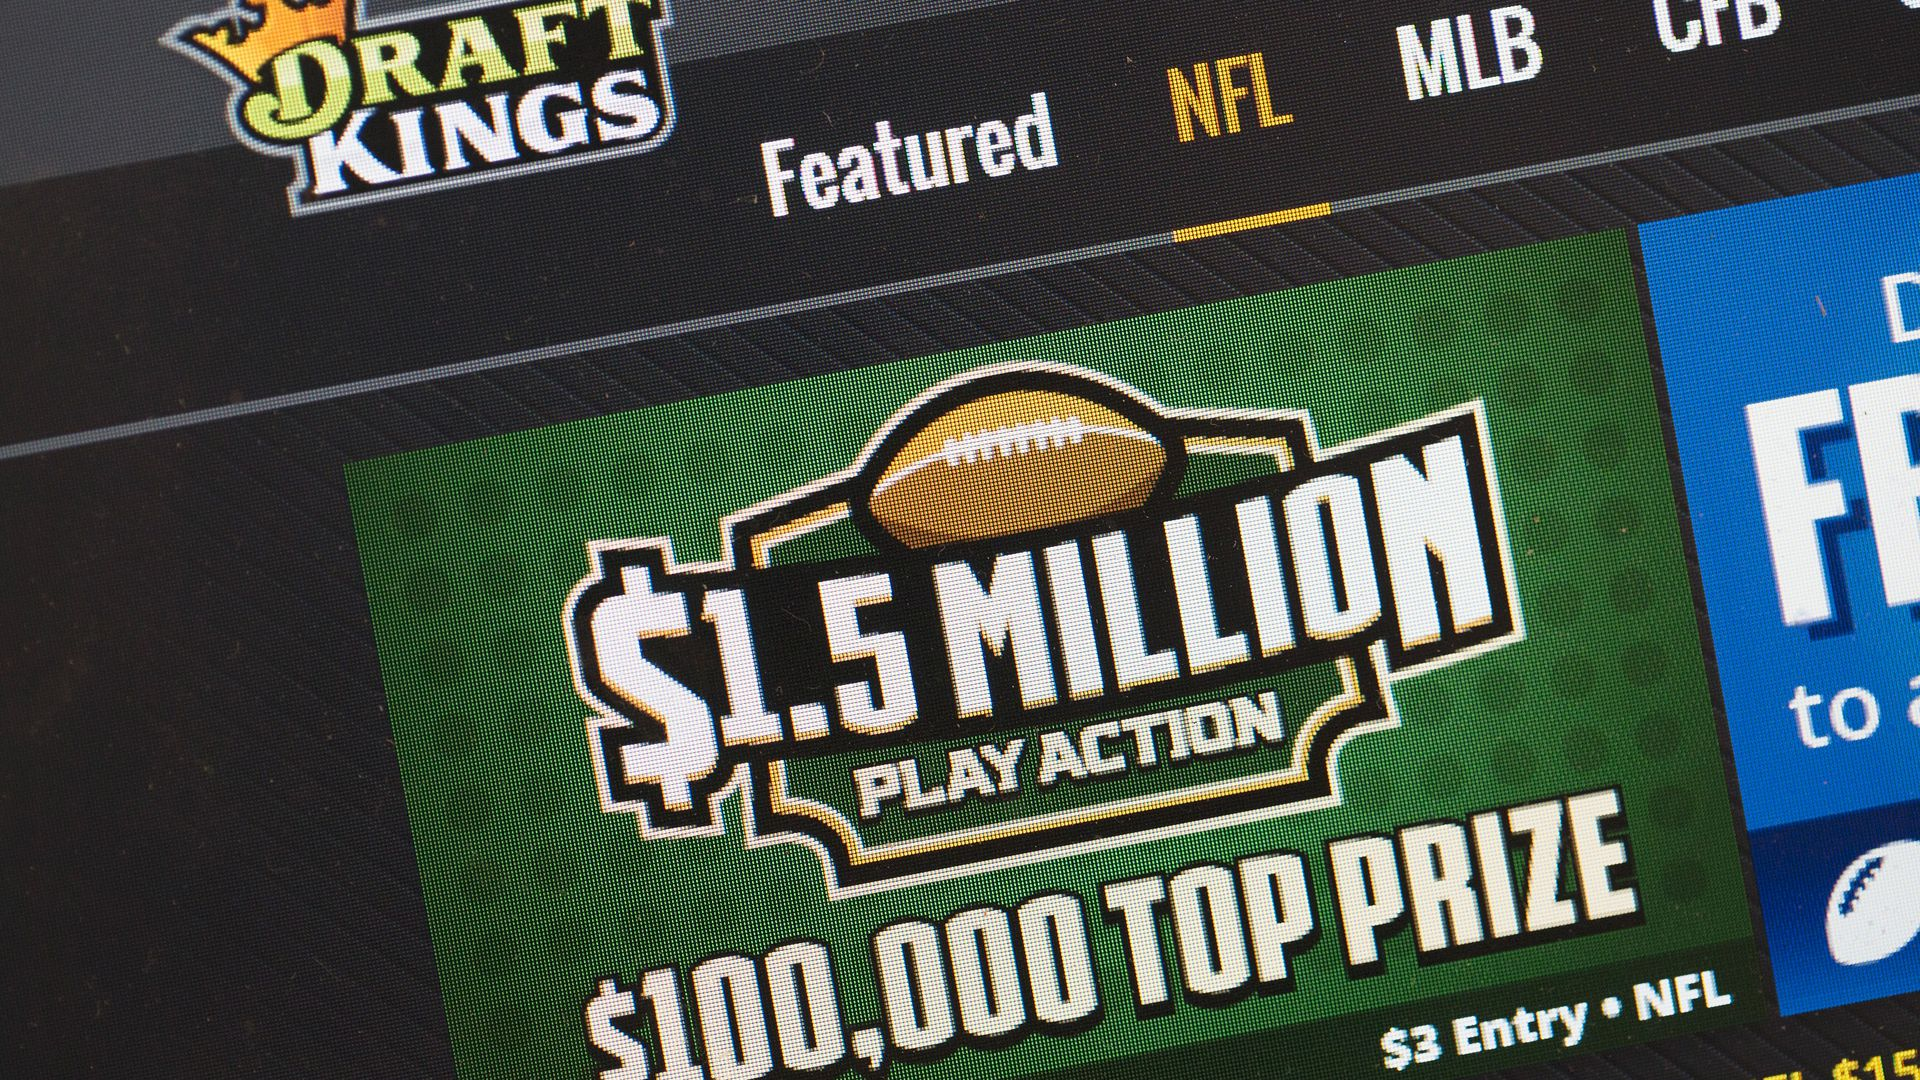 Draft Kings screen shot of NFL $1.5 million prize